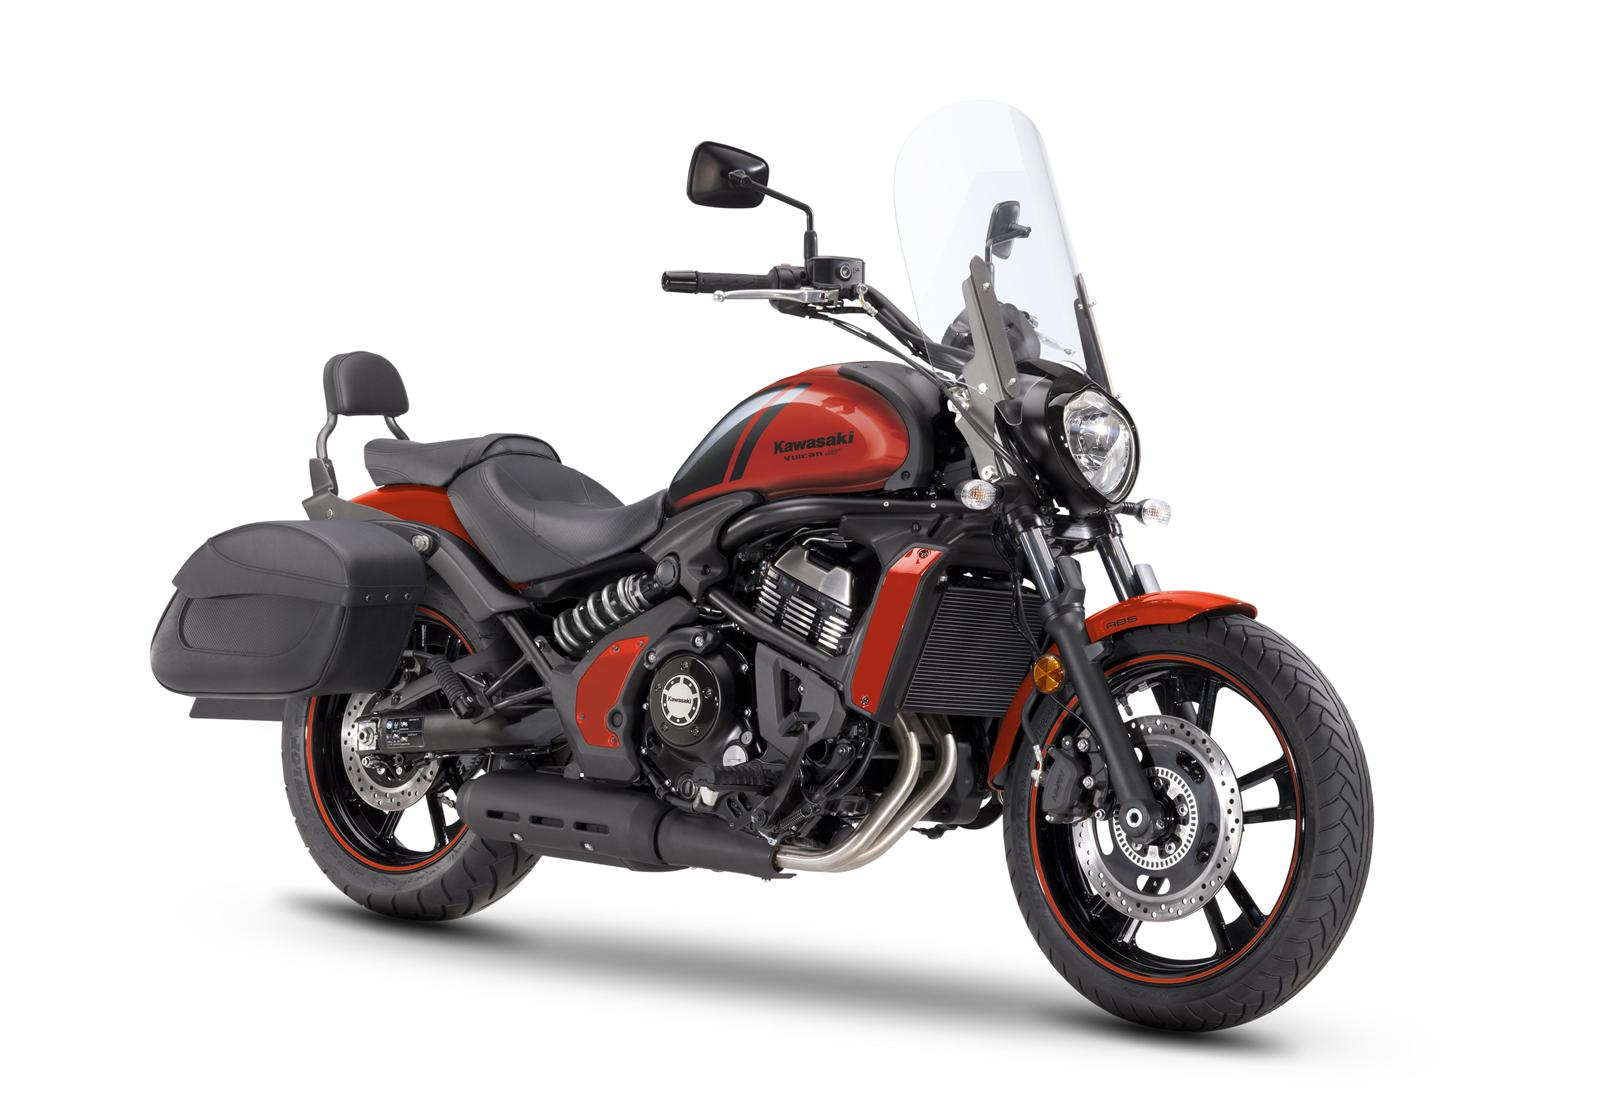 Kawasaki Vulcan-S 650 Light Tourer - Orange